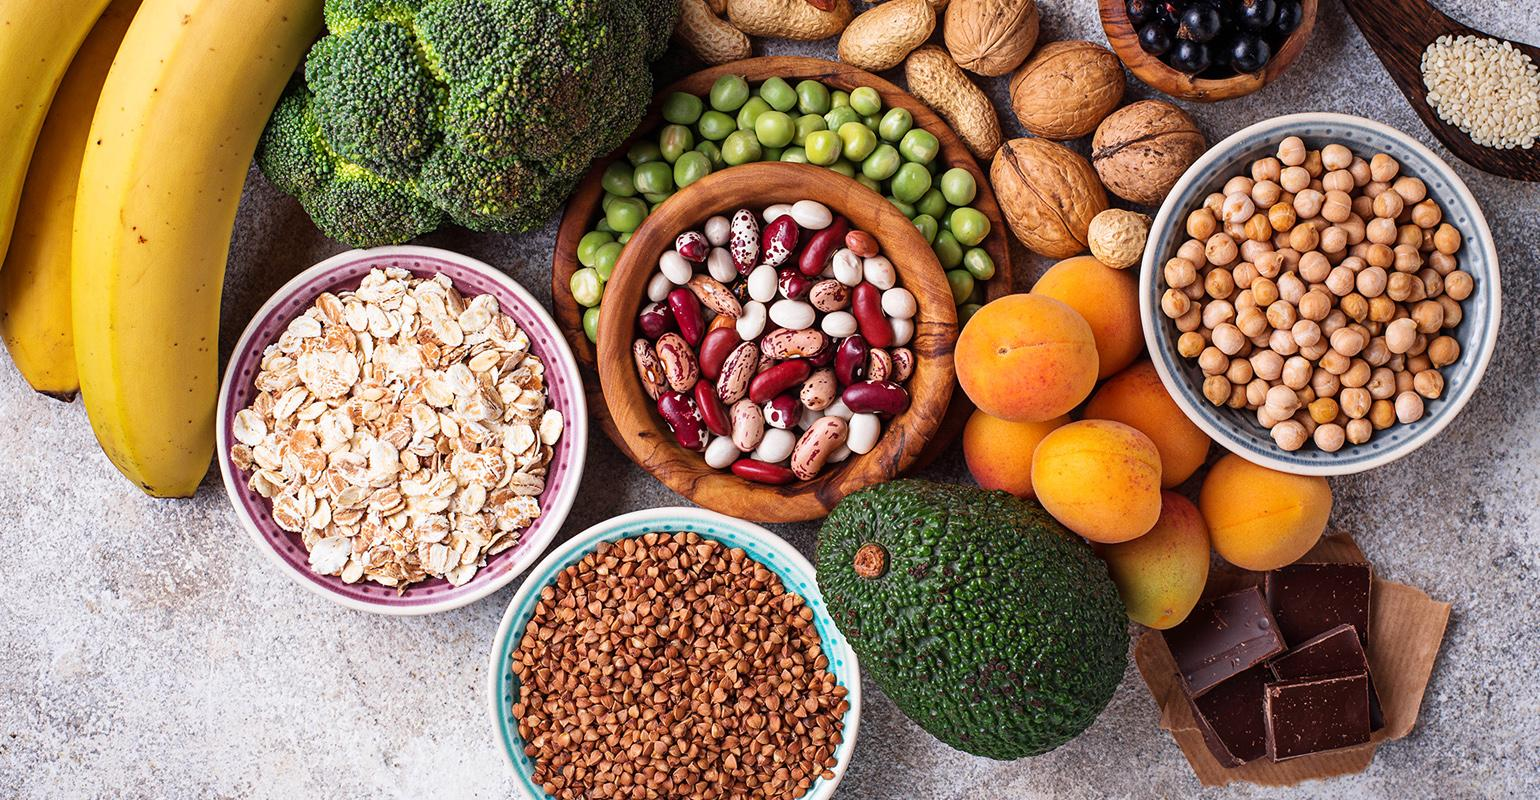 Magnesium might optimize high or low vitamin D levels | New Hope Network